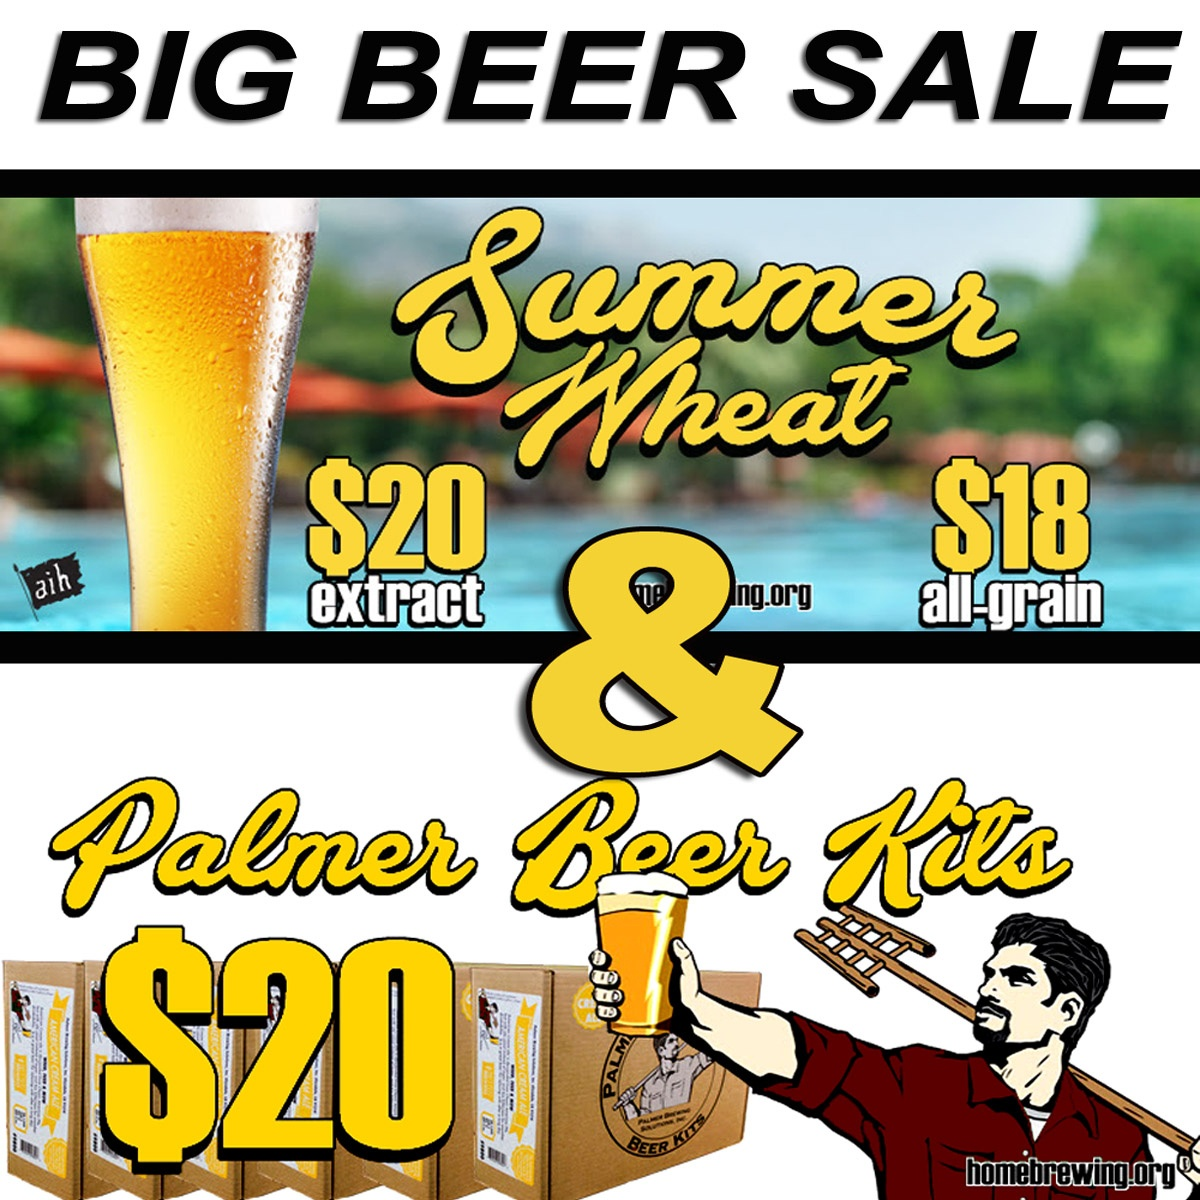 Beer Coupons And Beer Discounts : Yatra Coupon Codes 2018 For - Free - Free Printable Beer Coupons